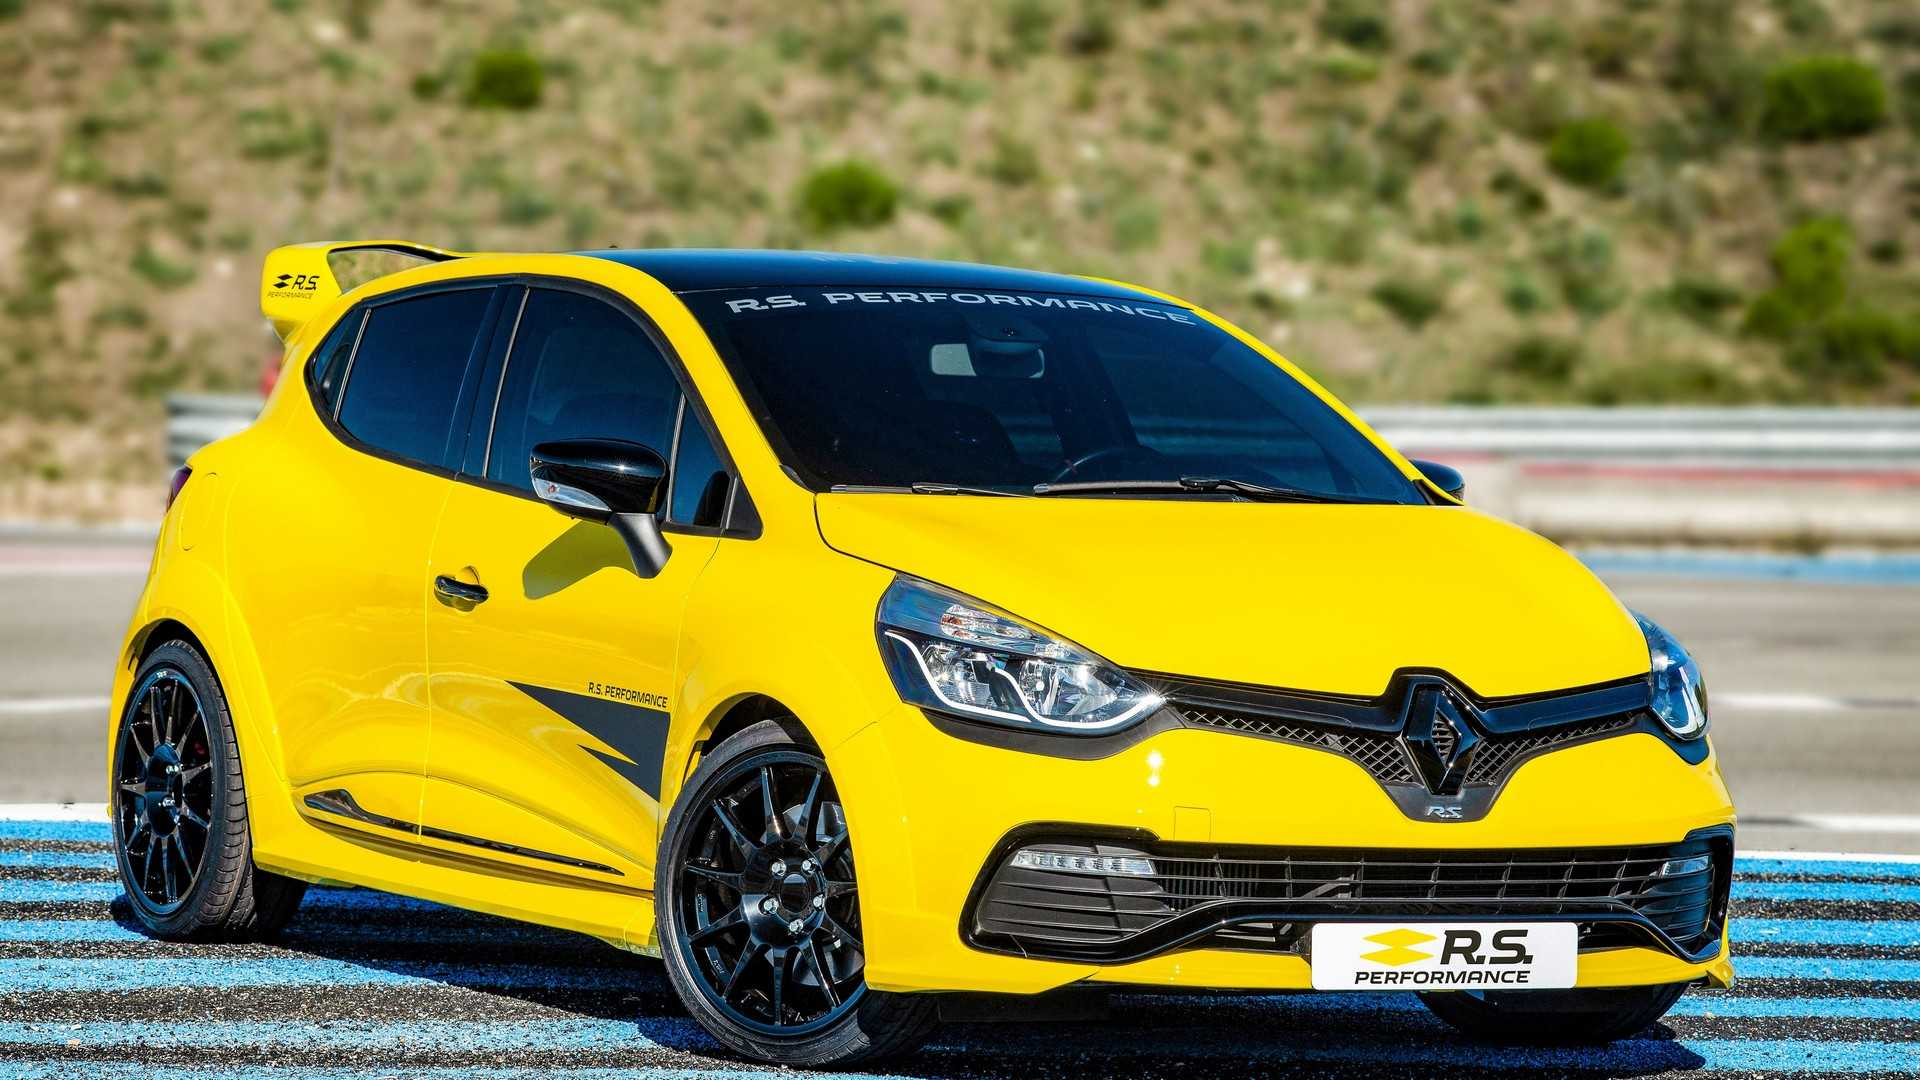 Renault RS Performance Parts Make Clio RS Hot Hatch Even Hotter